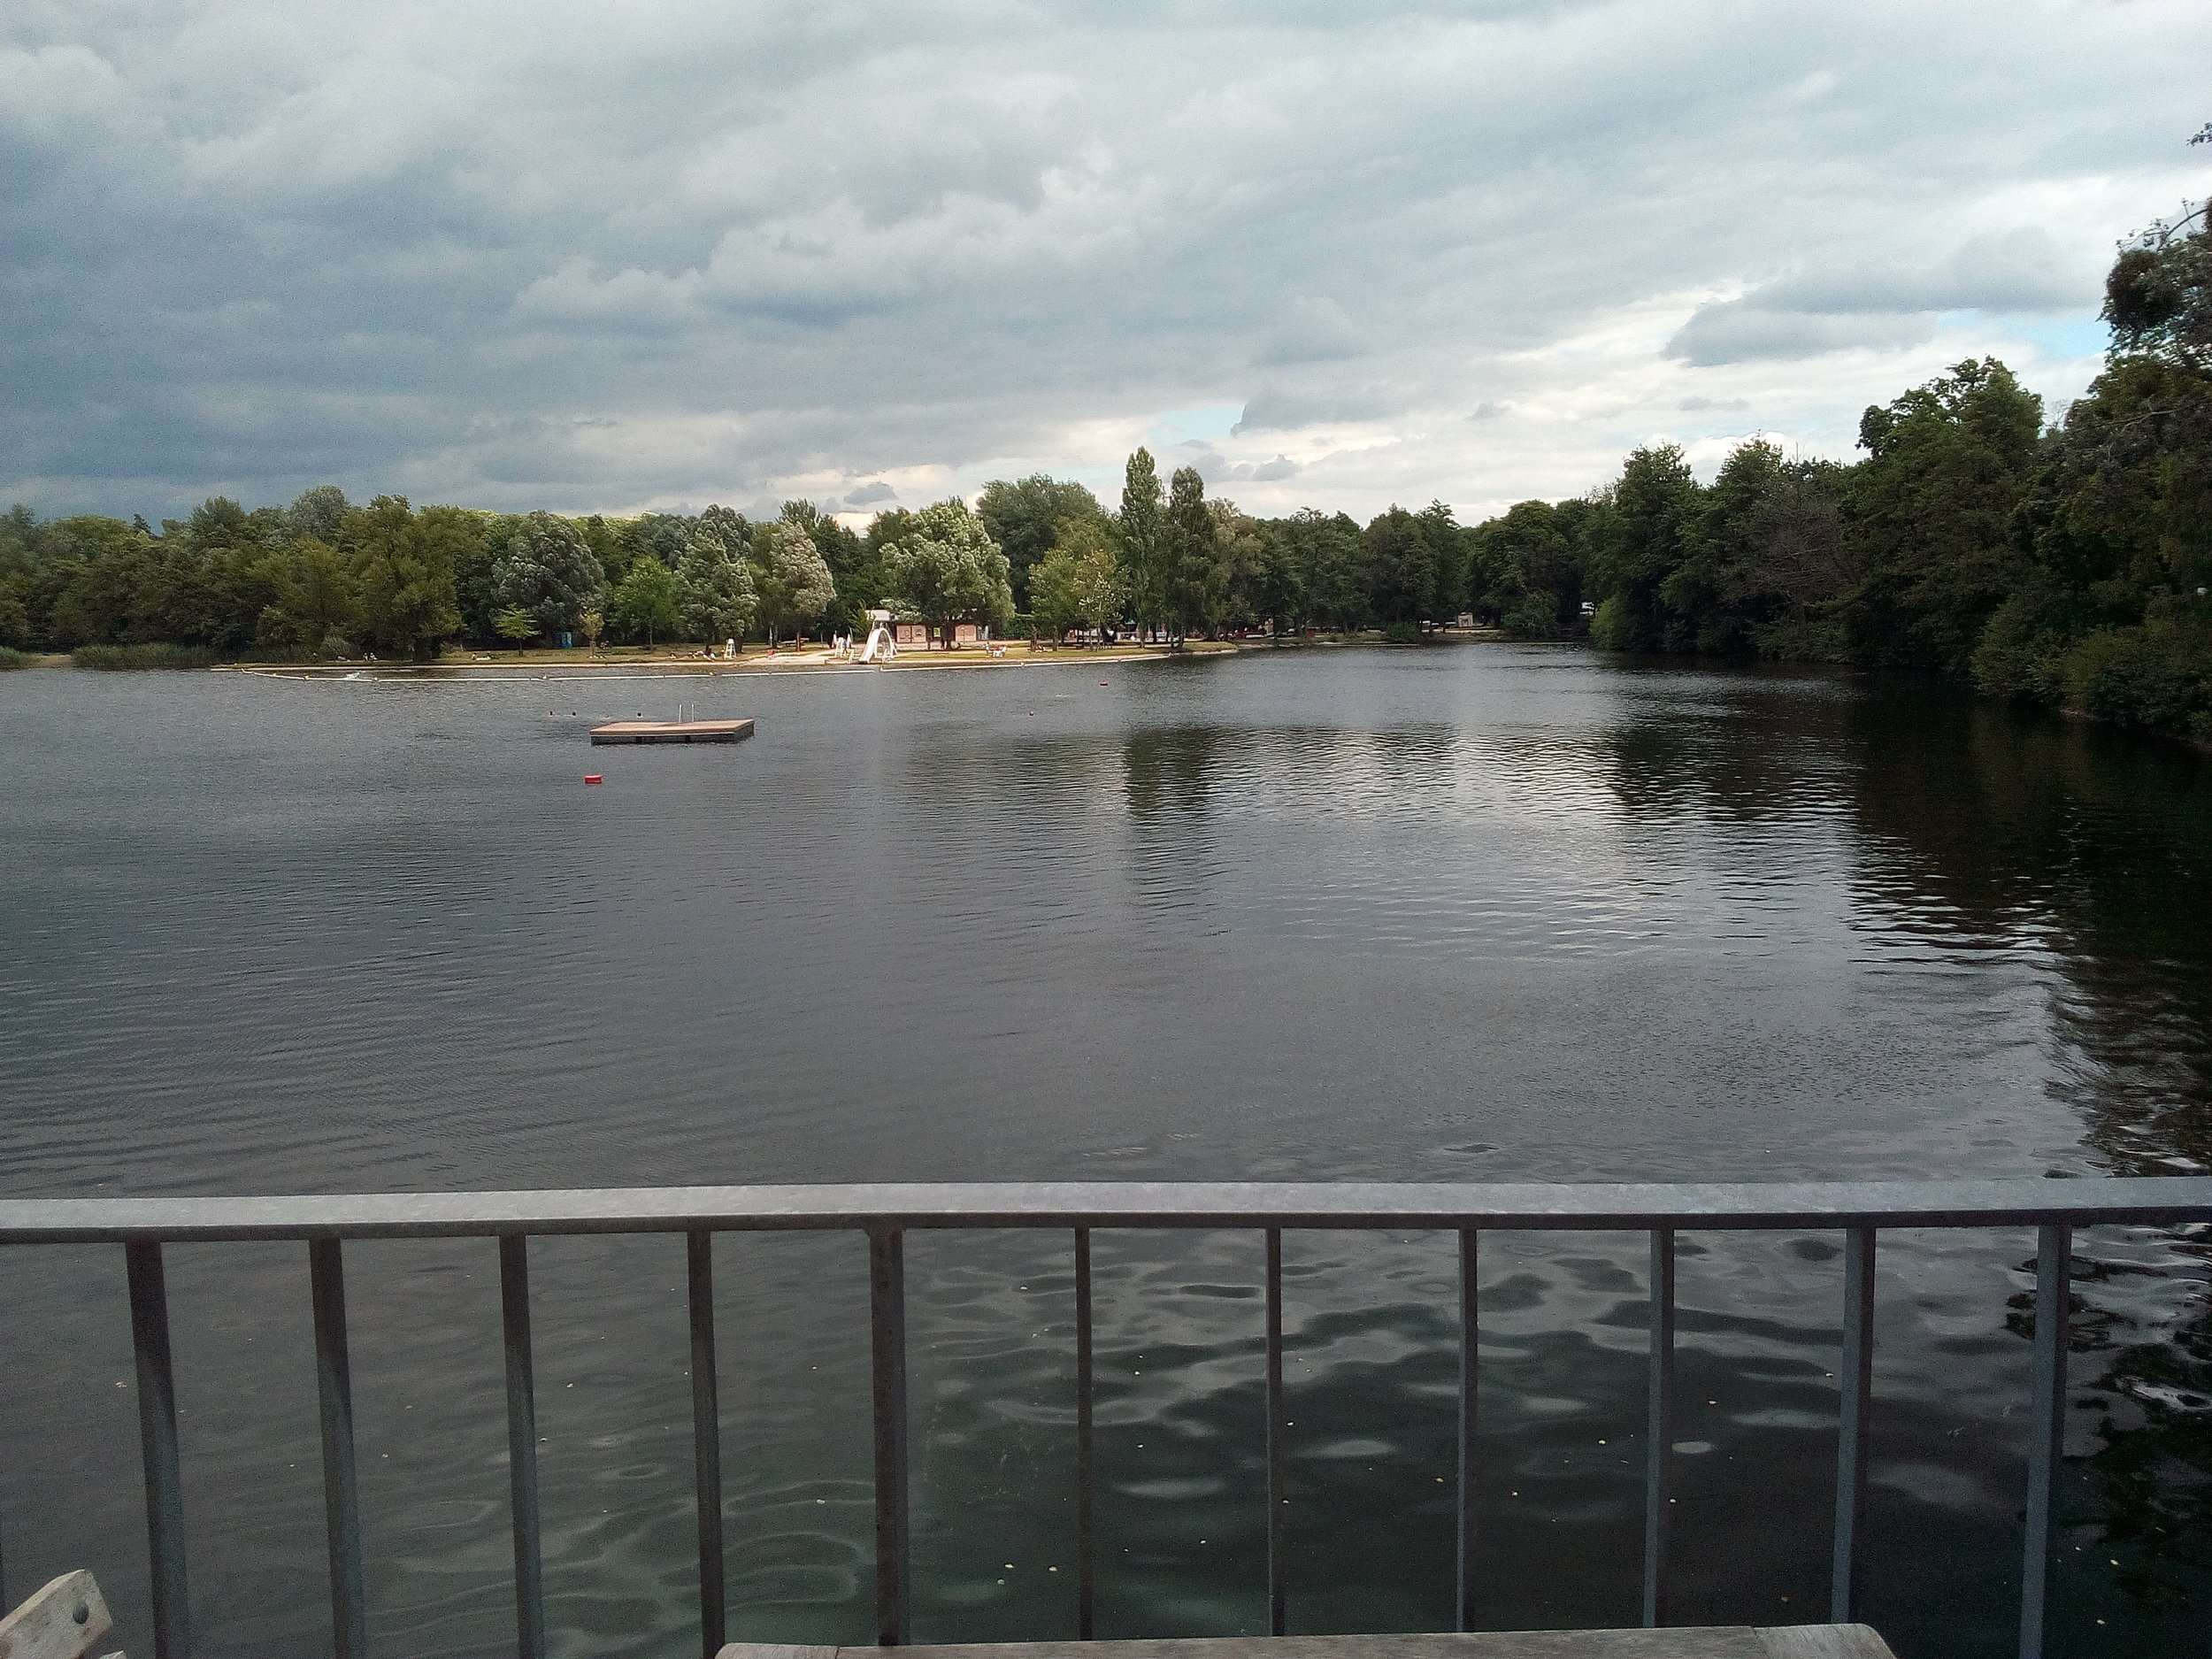 view from our table, looking right at the lake #lake #woog #darmstadt #photography #phylleli #wellnessblogger #lifestyleblog